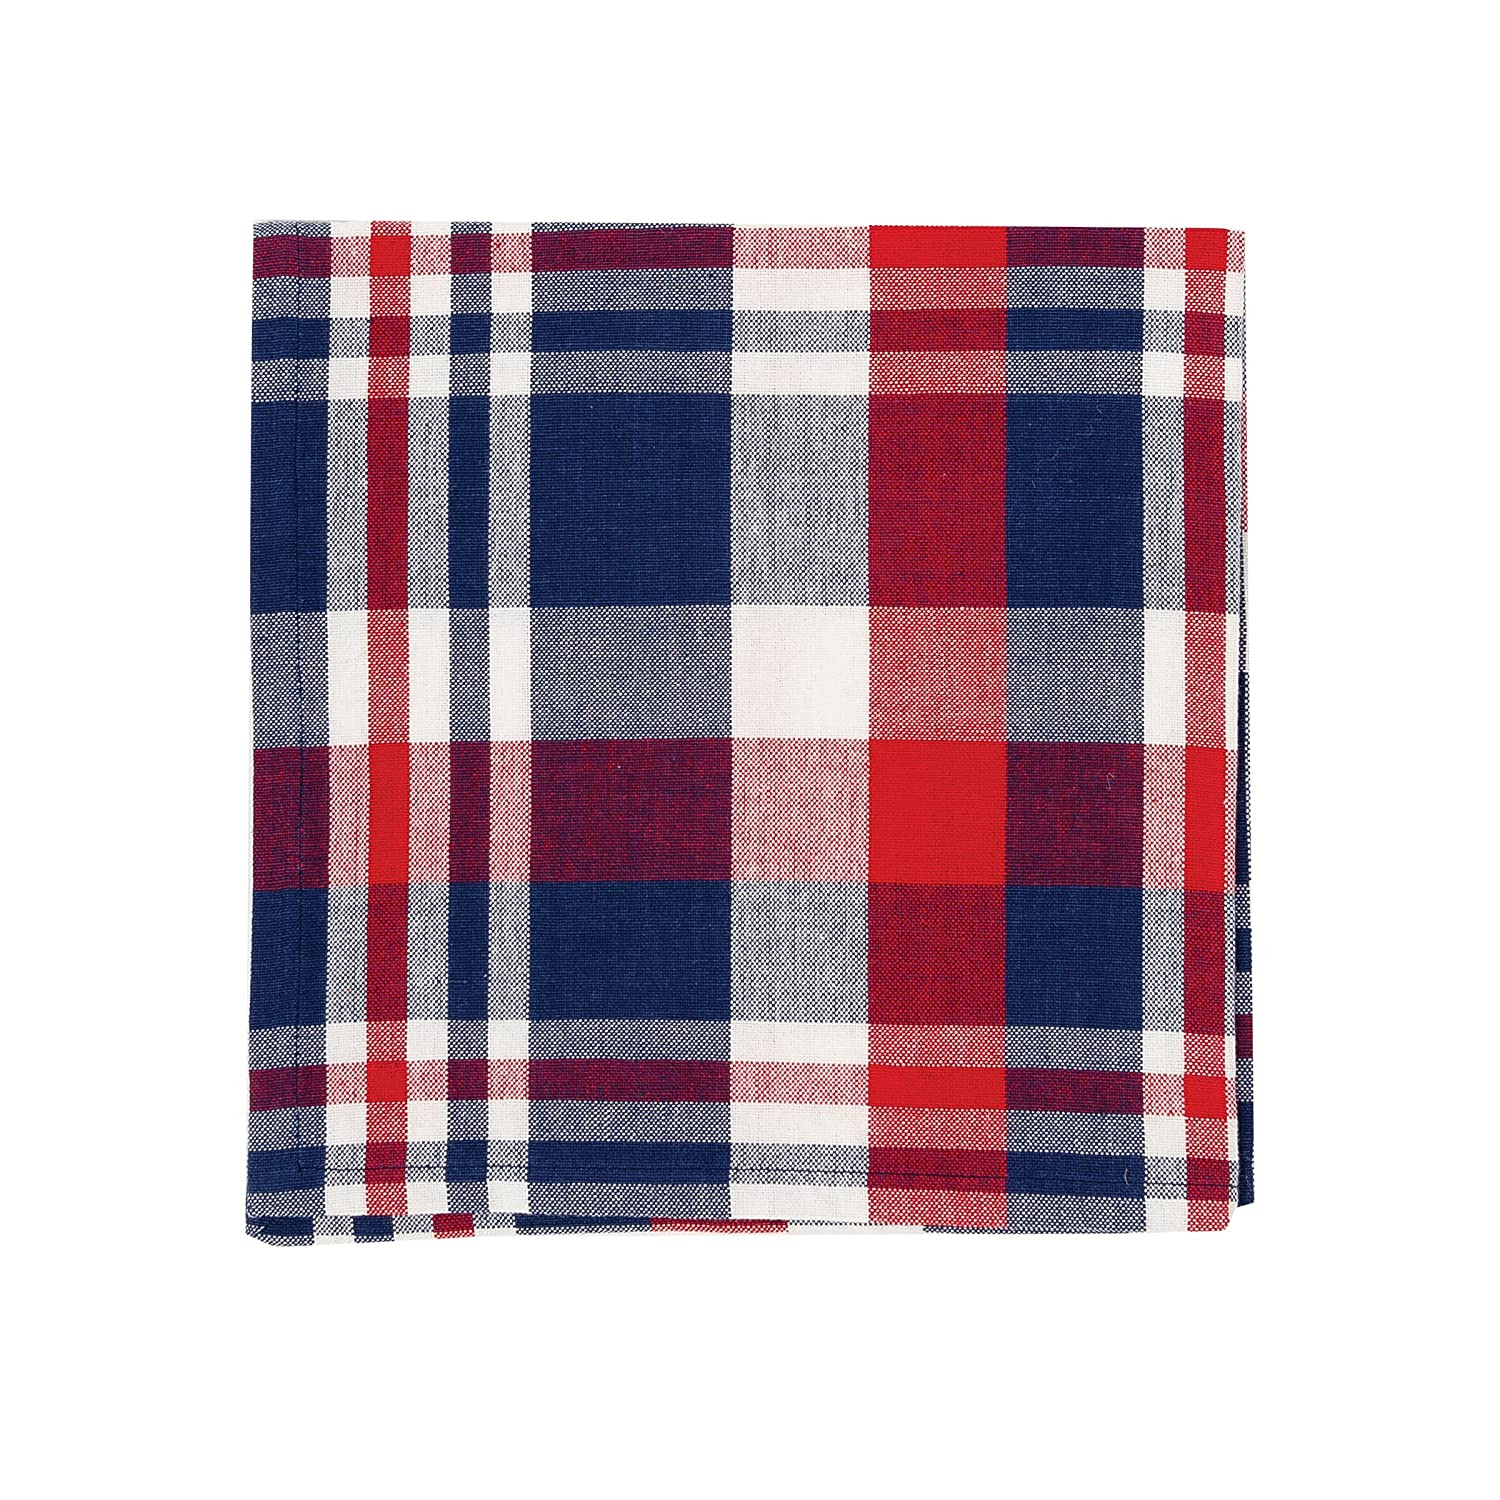 (Napkin, Harbor Red/Blue Plaid) - Harbour Red White and Blue Plaid Woven Cotton Napkin 18x18   B0762RLB1F